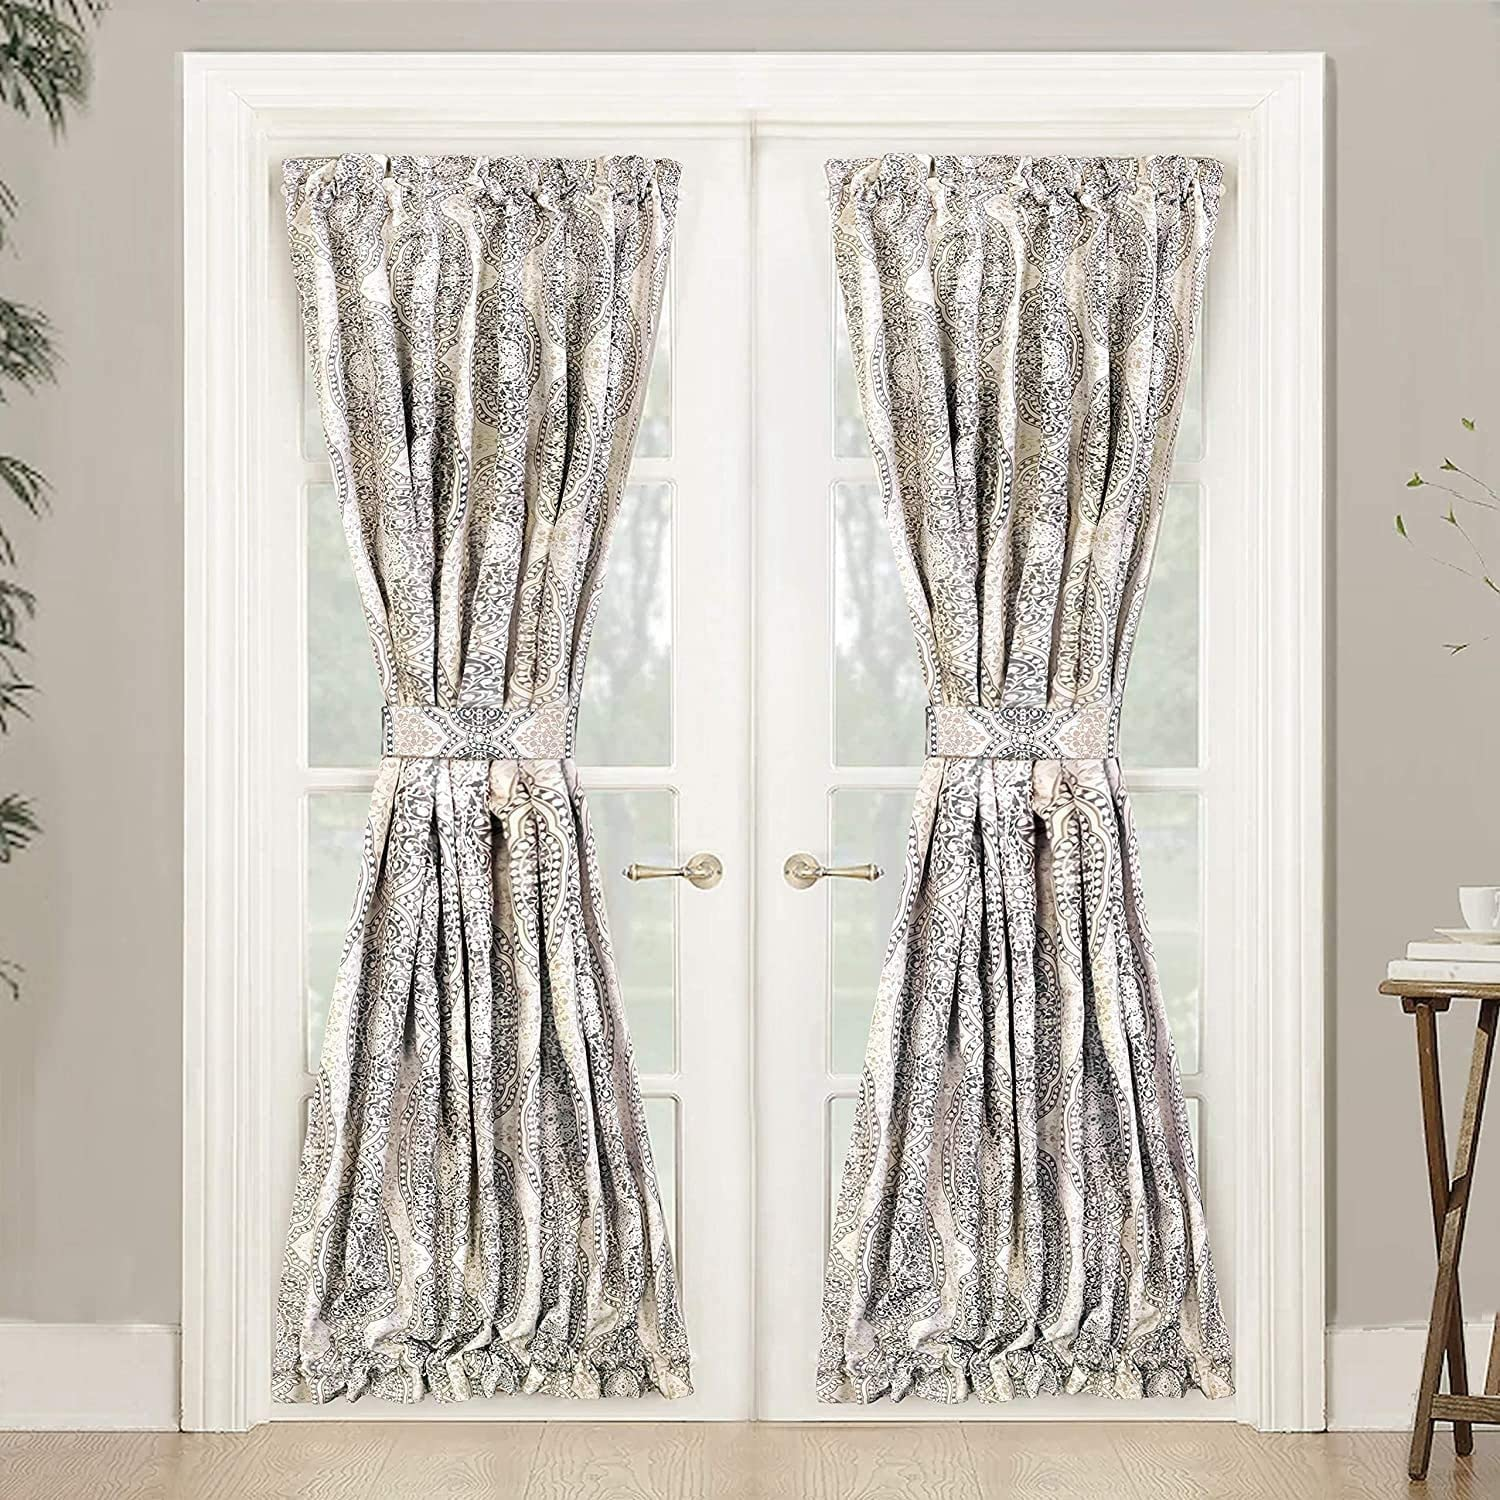 "UKN Rod Pocket Room Darkening Patio French Door Curtain Panel Pair 52"" Width X 72"" Length Grey Medallion Kids Teen Modern Contemporary Polyester"